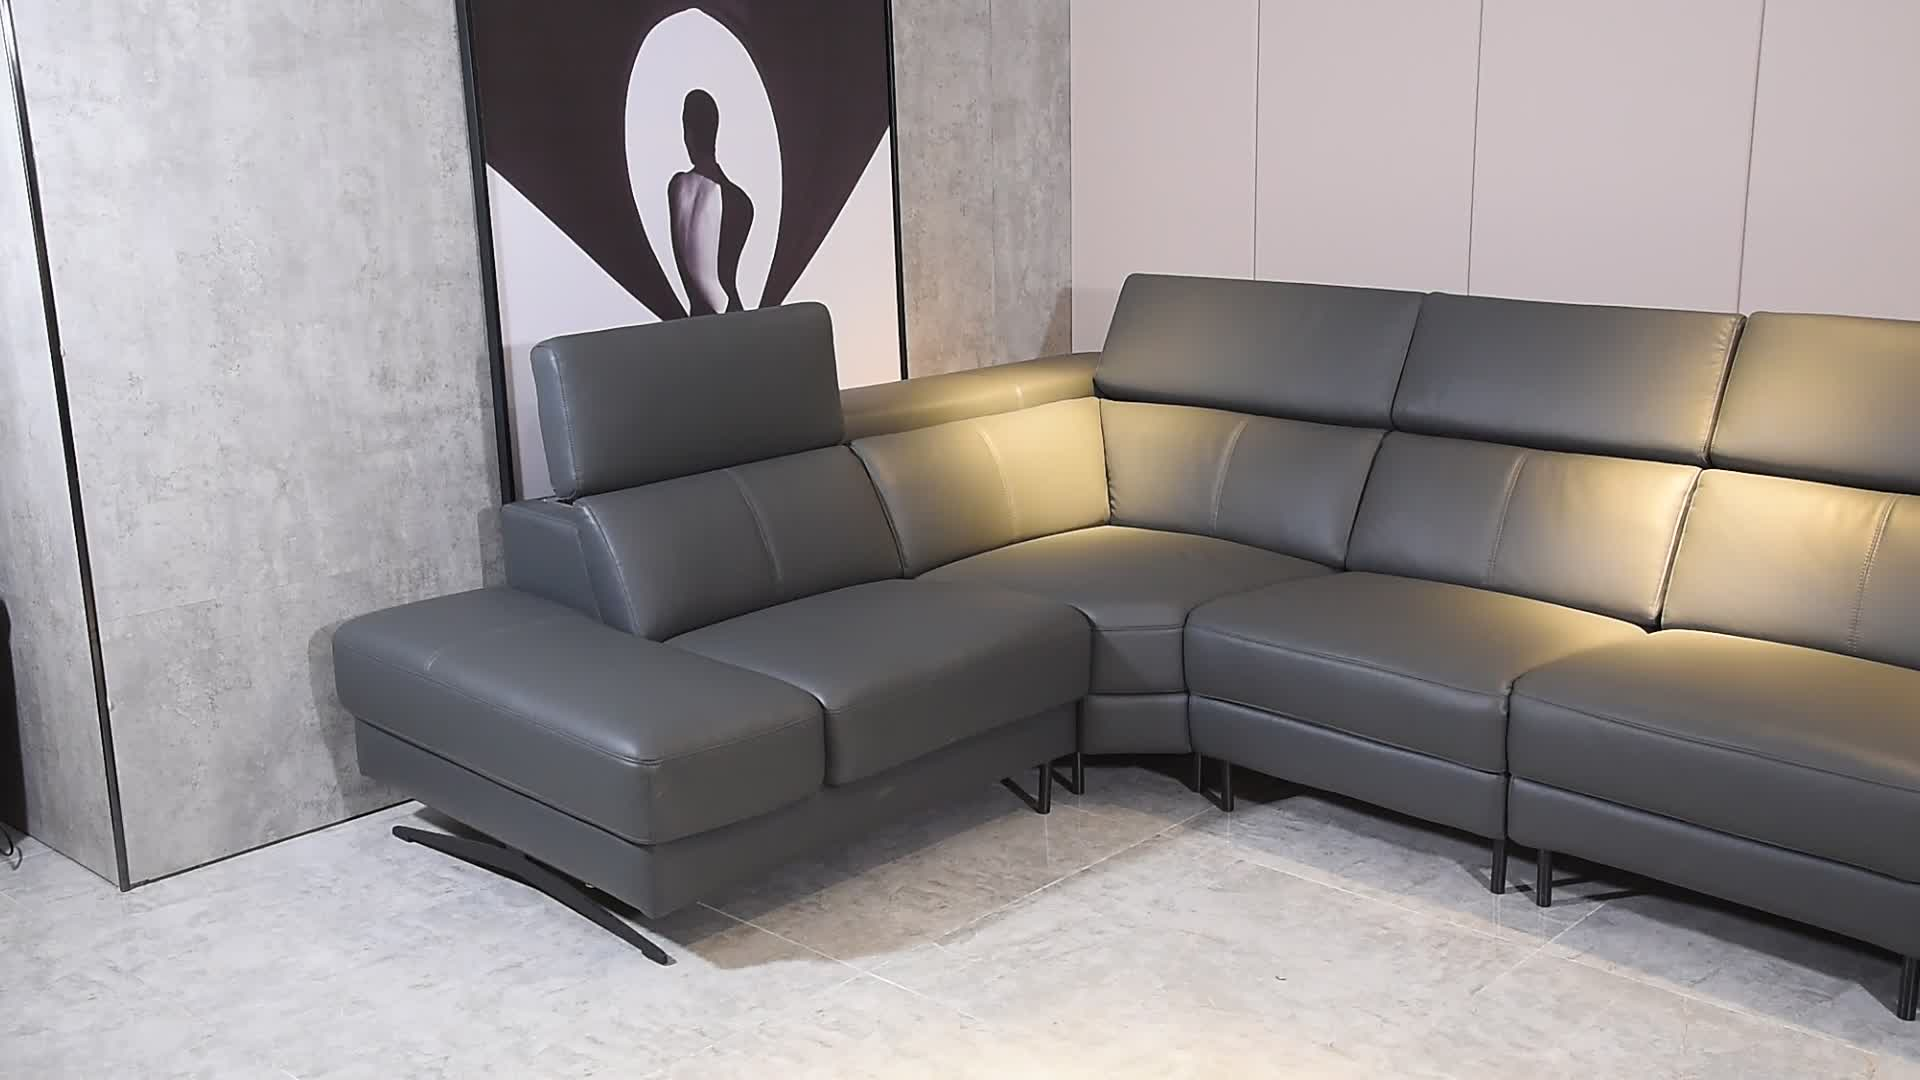 Lazy Boy 7 Seater Sectional Sofa Red Black - Buy Sectional Sofa Red  Black,Lazy Boy Sectional Sofa,7 Seater Sectional Sofa Product on Alibaba.com